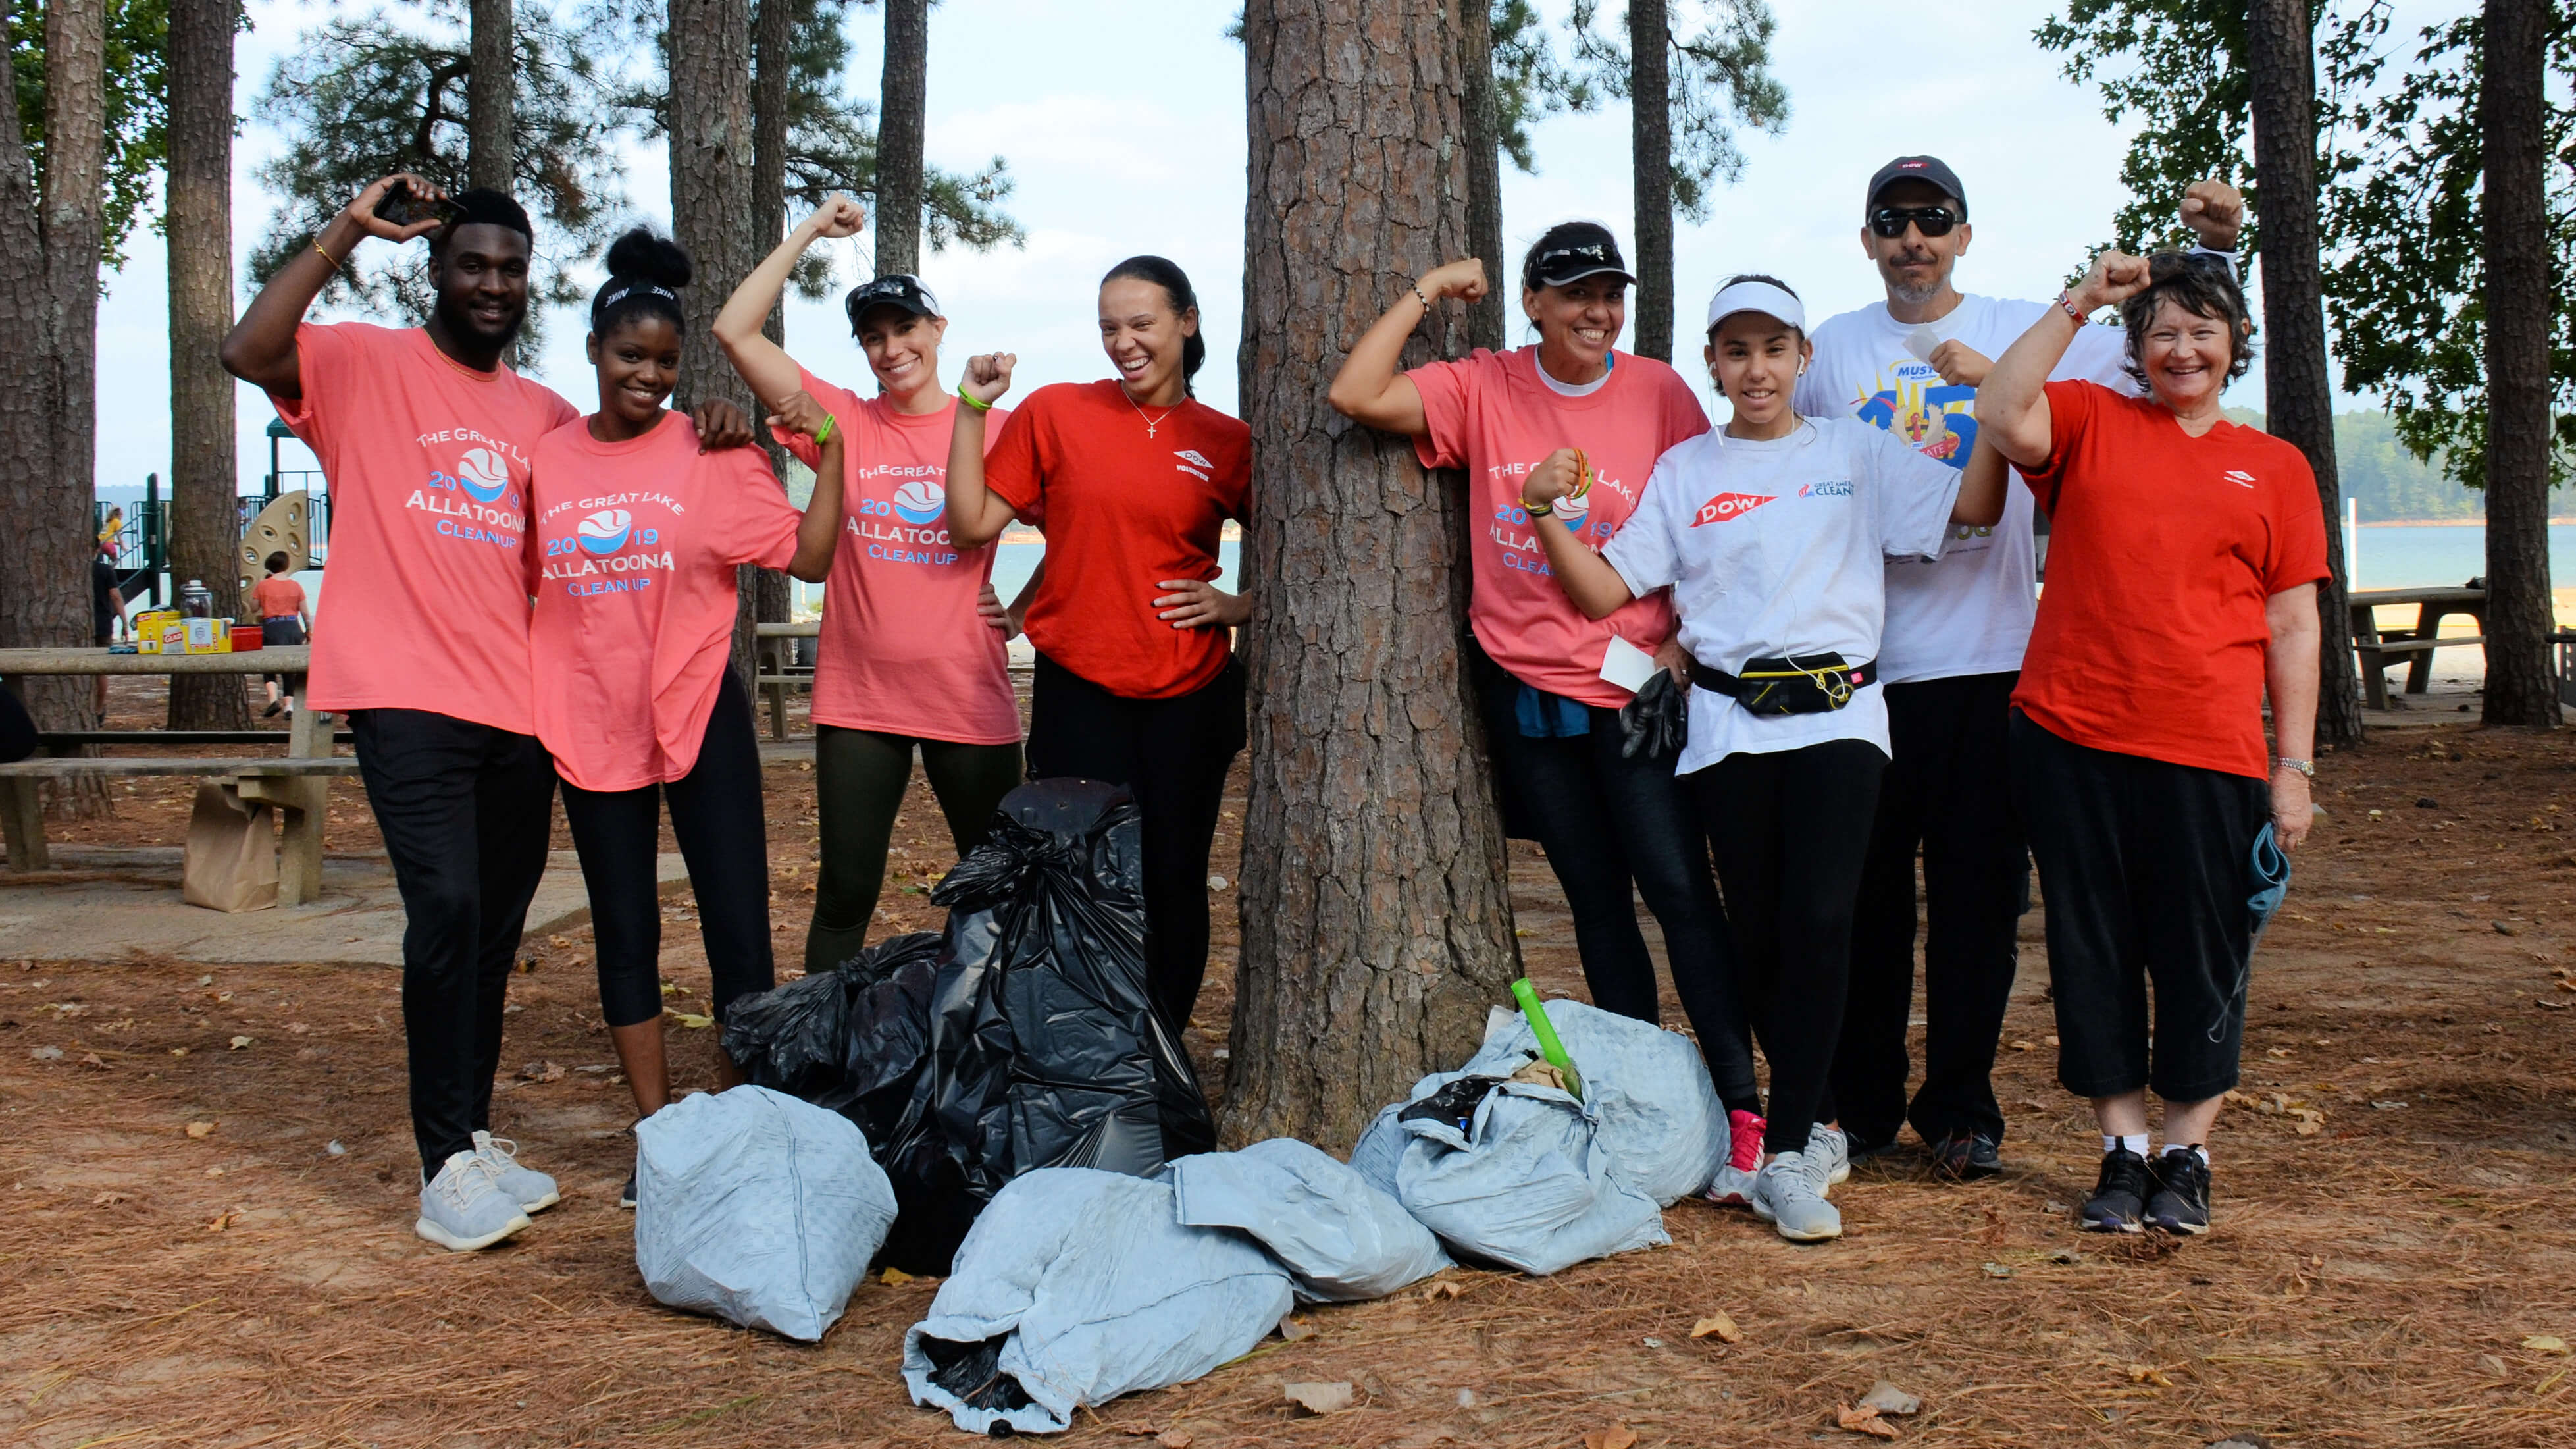 The Great Lake Cleanup